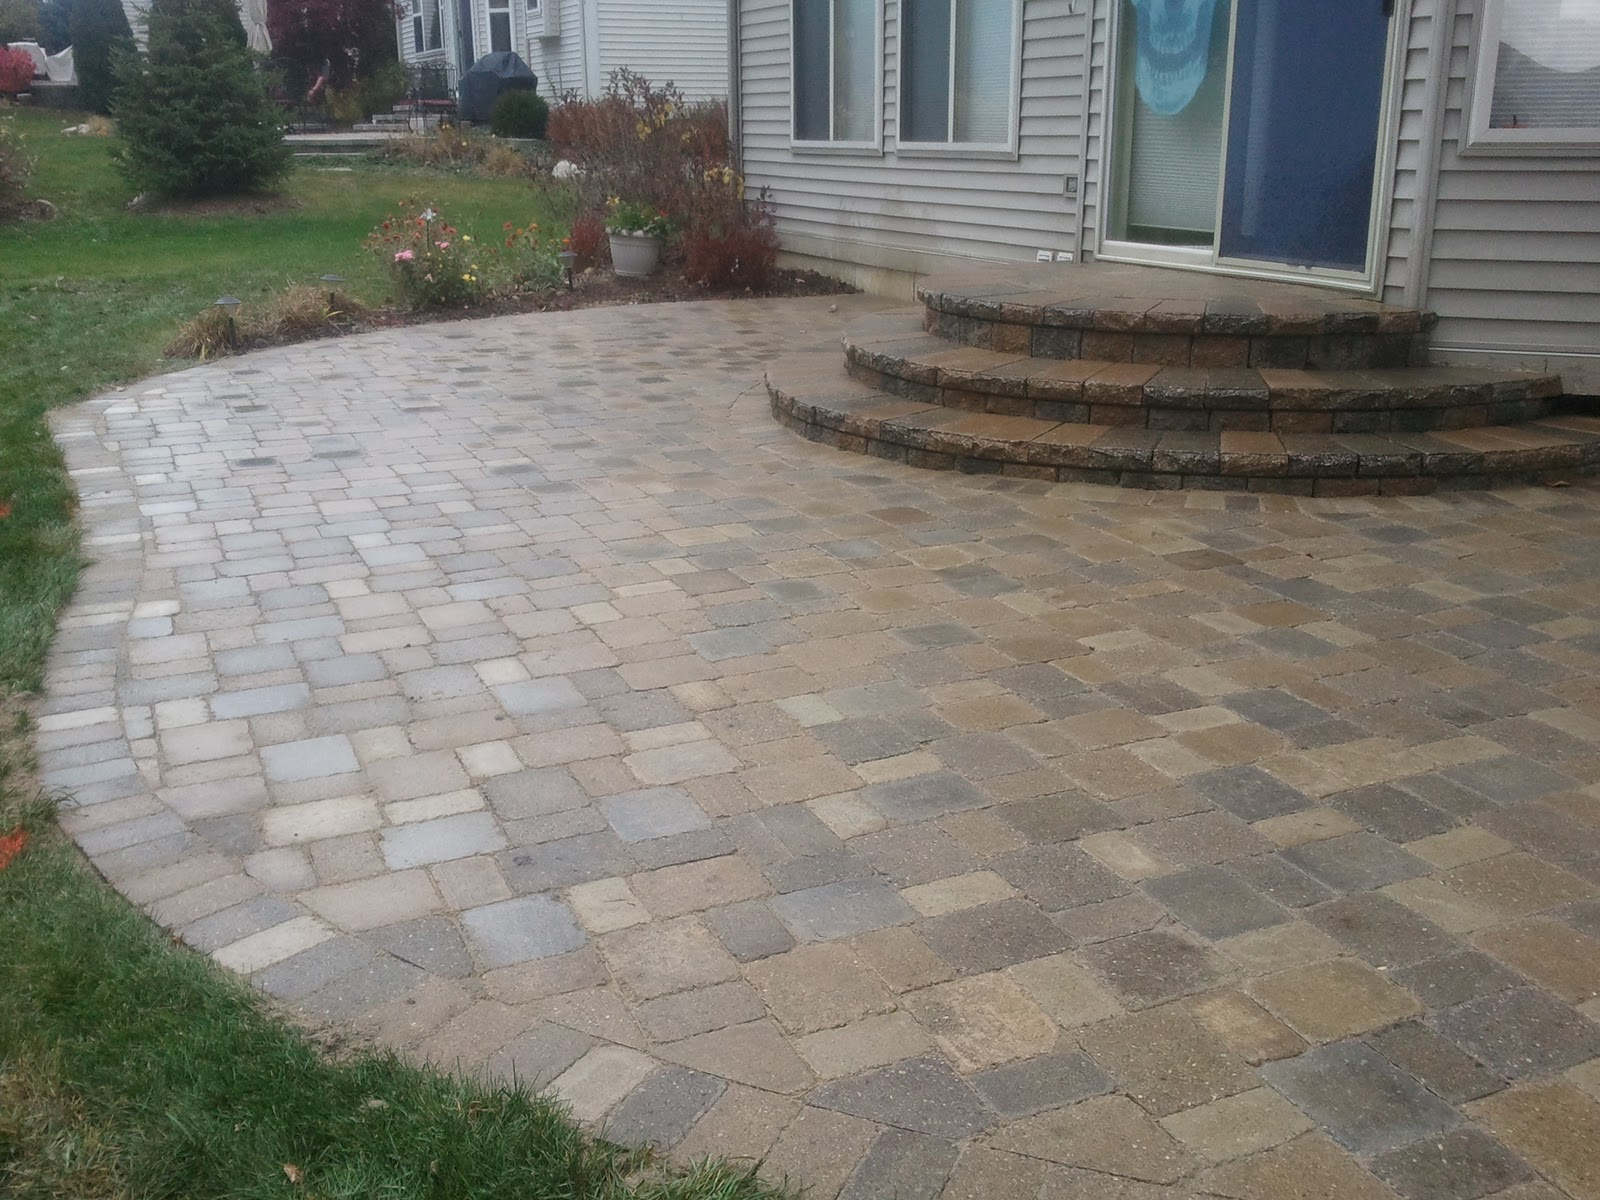 Patio stone pavers patio design ideas for Paver patio ideas pictures